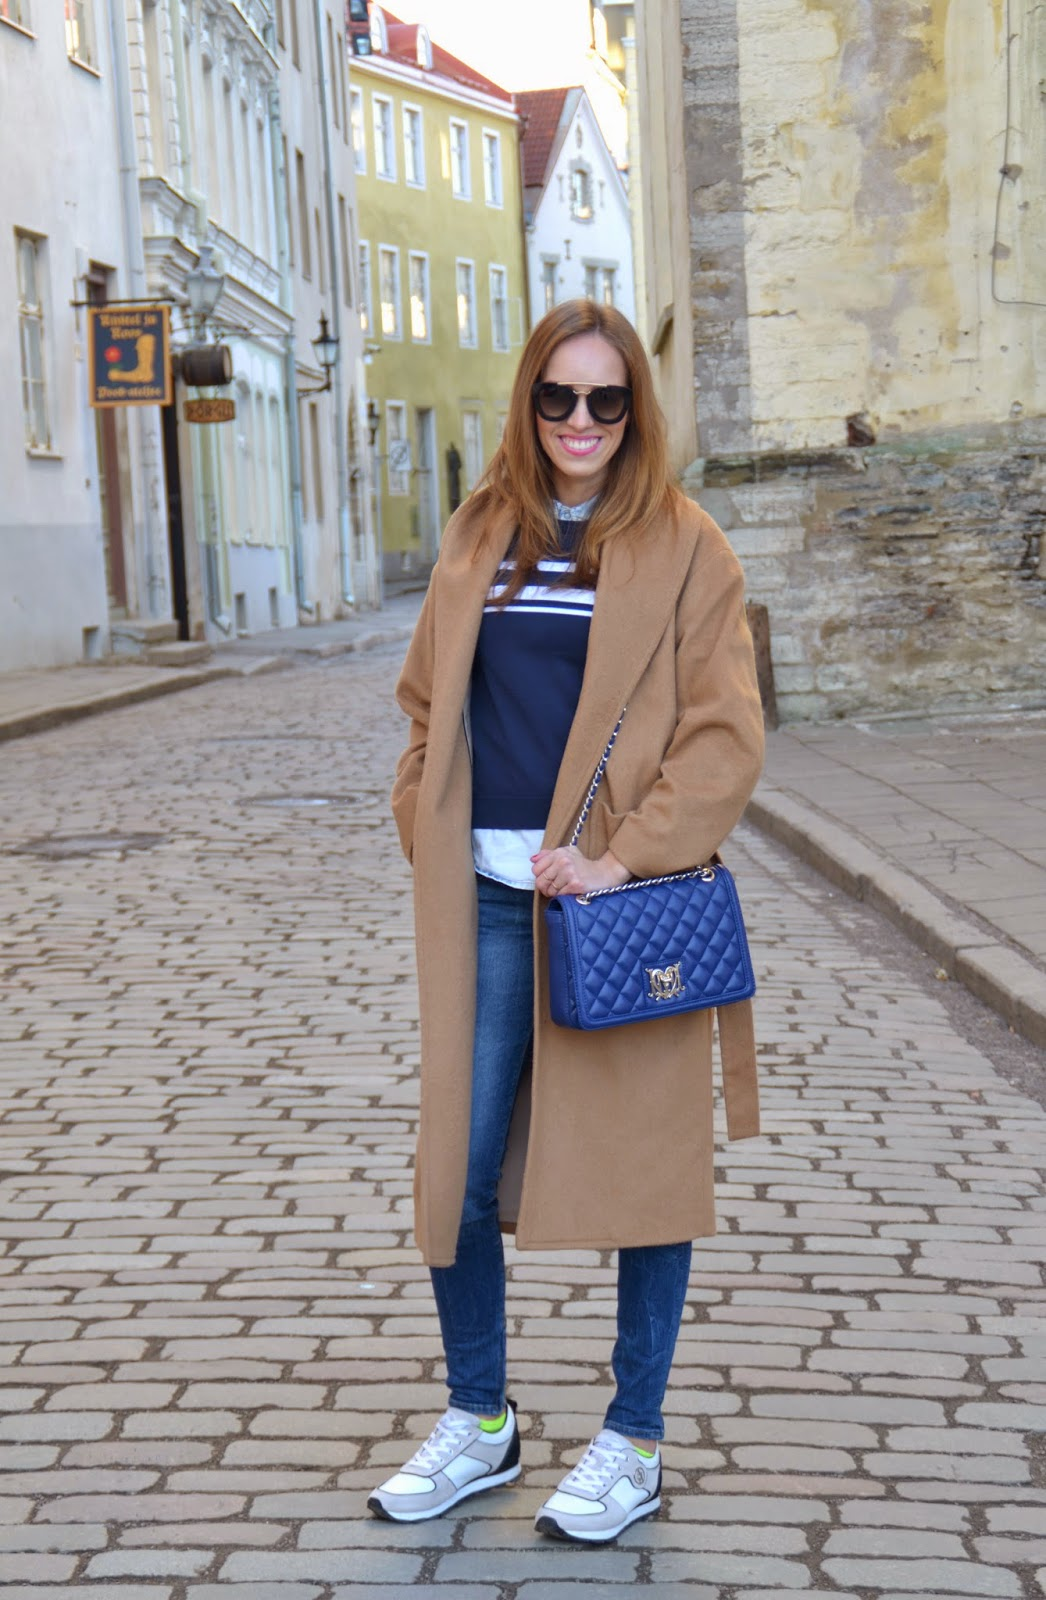 camel-coat-blue-jeans-white-sneakers-outfit-winter-street-style